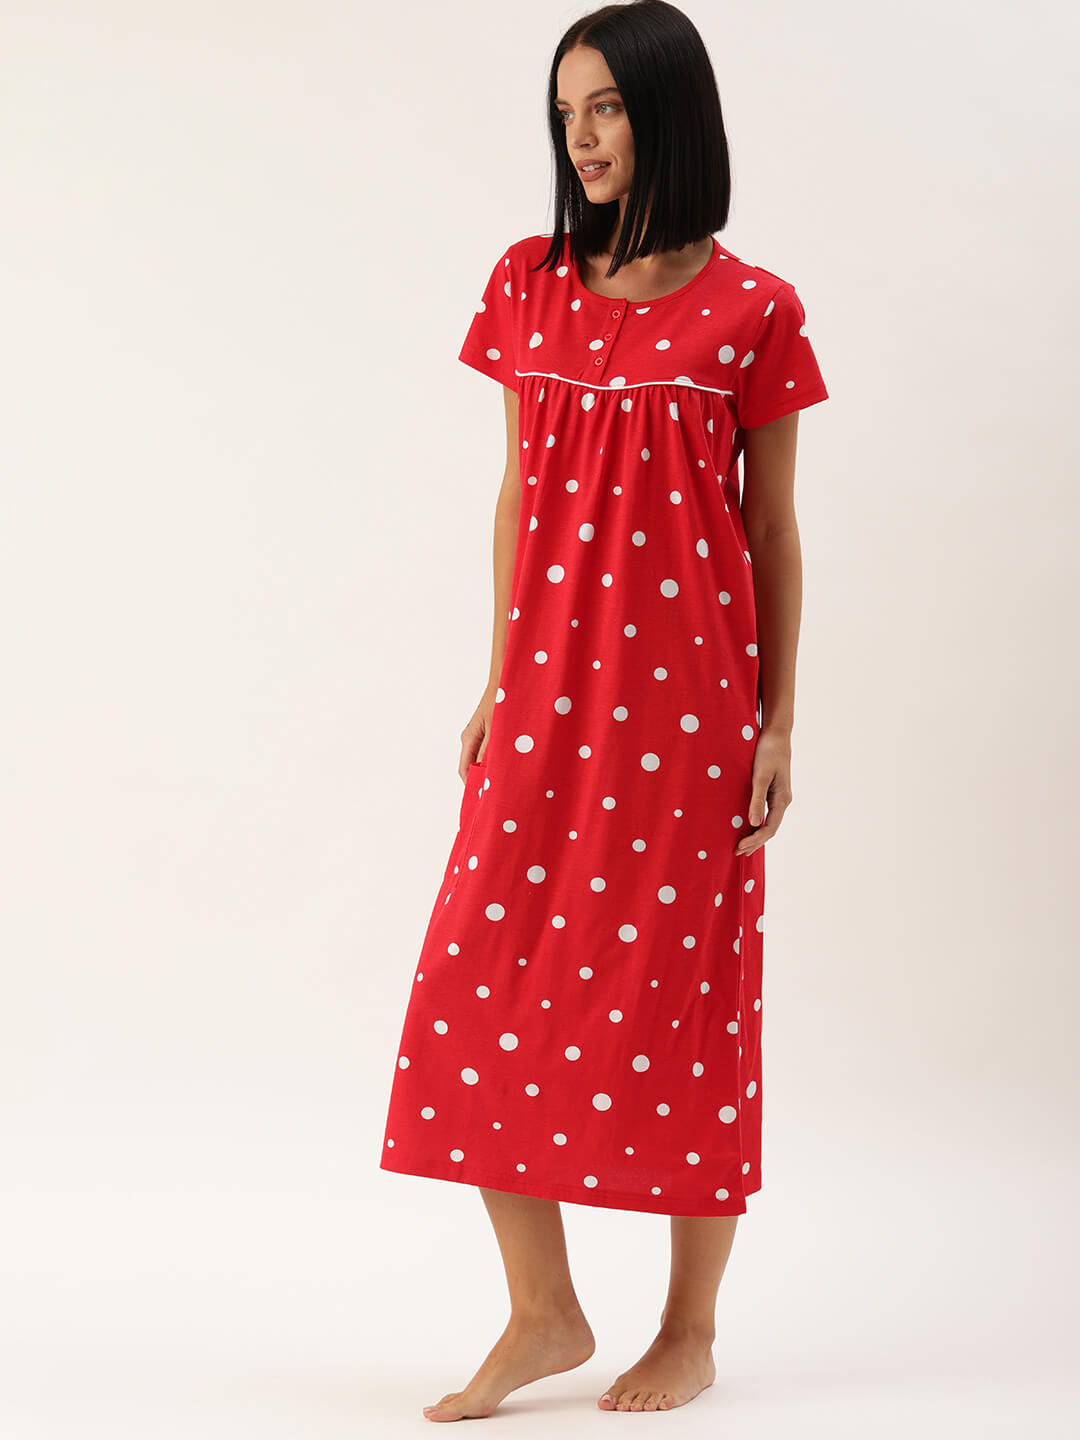 Slumber Jill Red Polka Night Dress